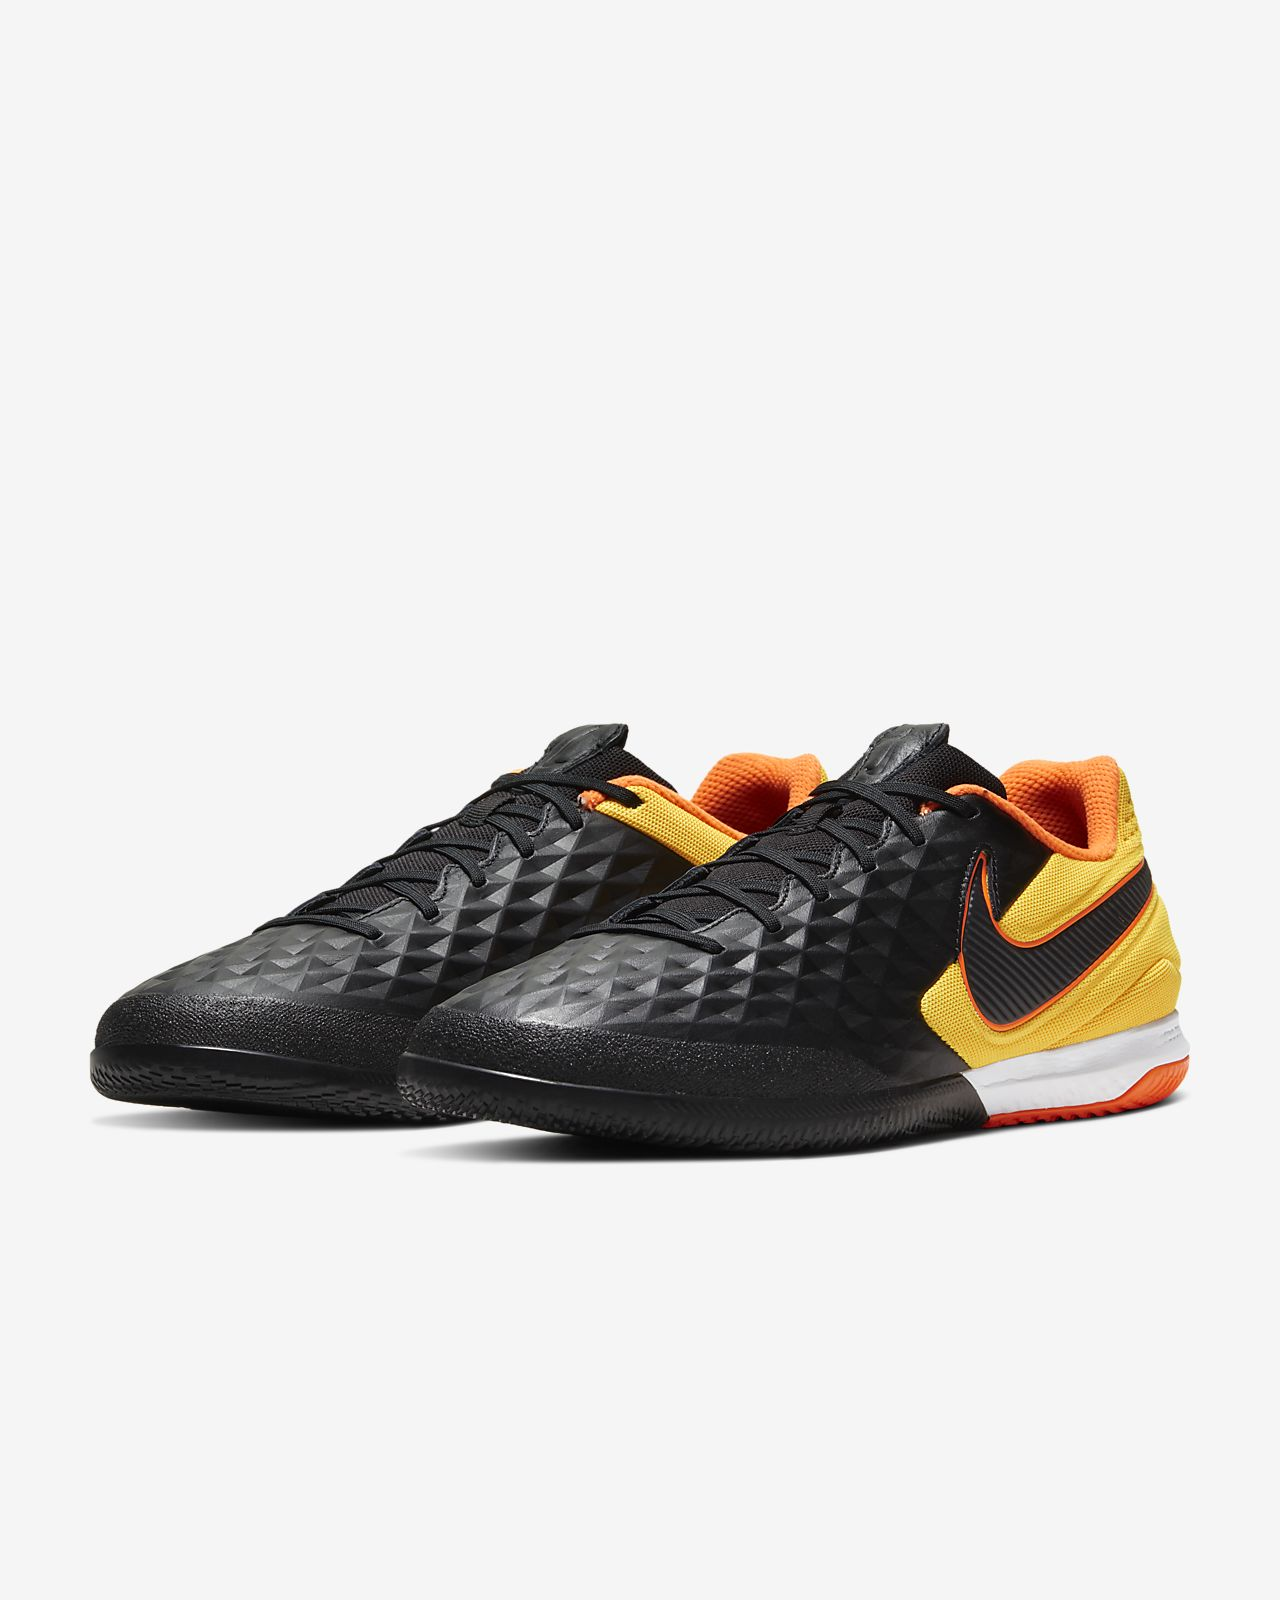 Nike React Tiempo Legend 8 Pro IC IndoorCourt Football Shoe